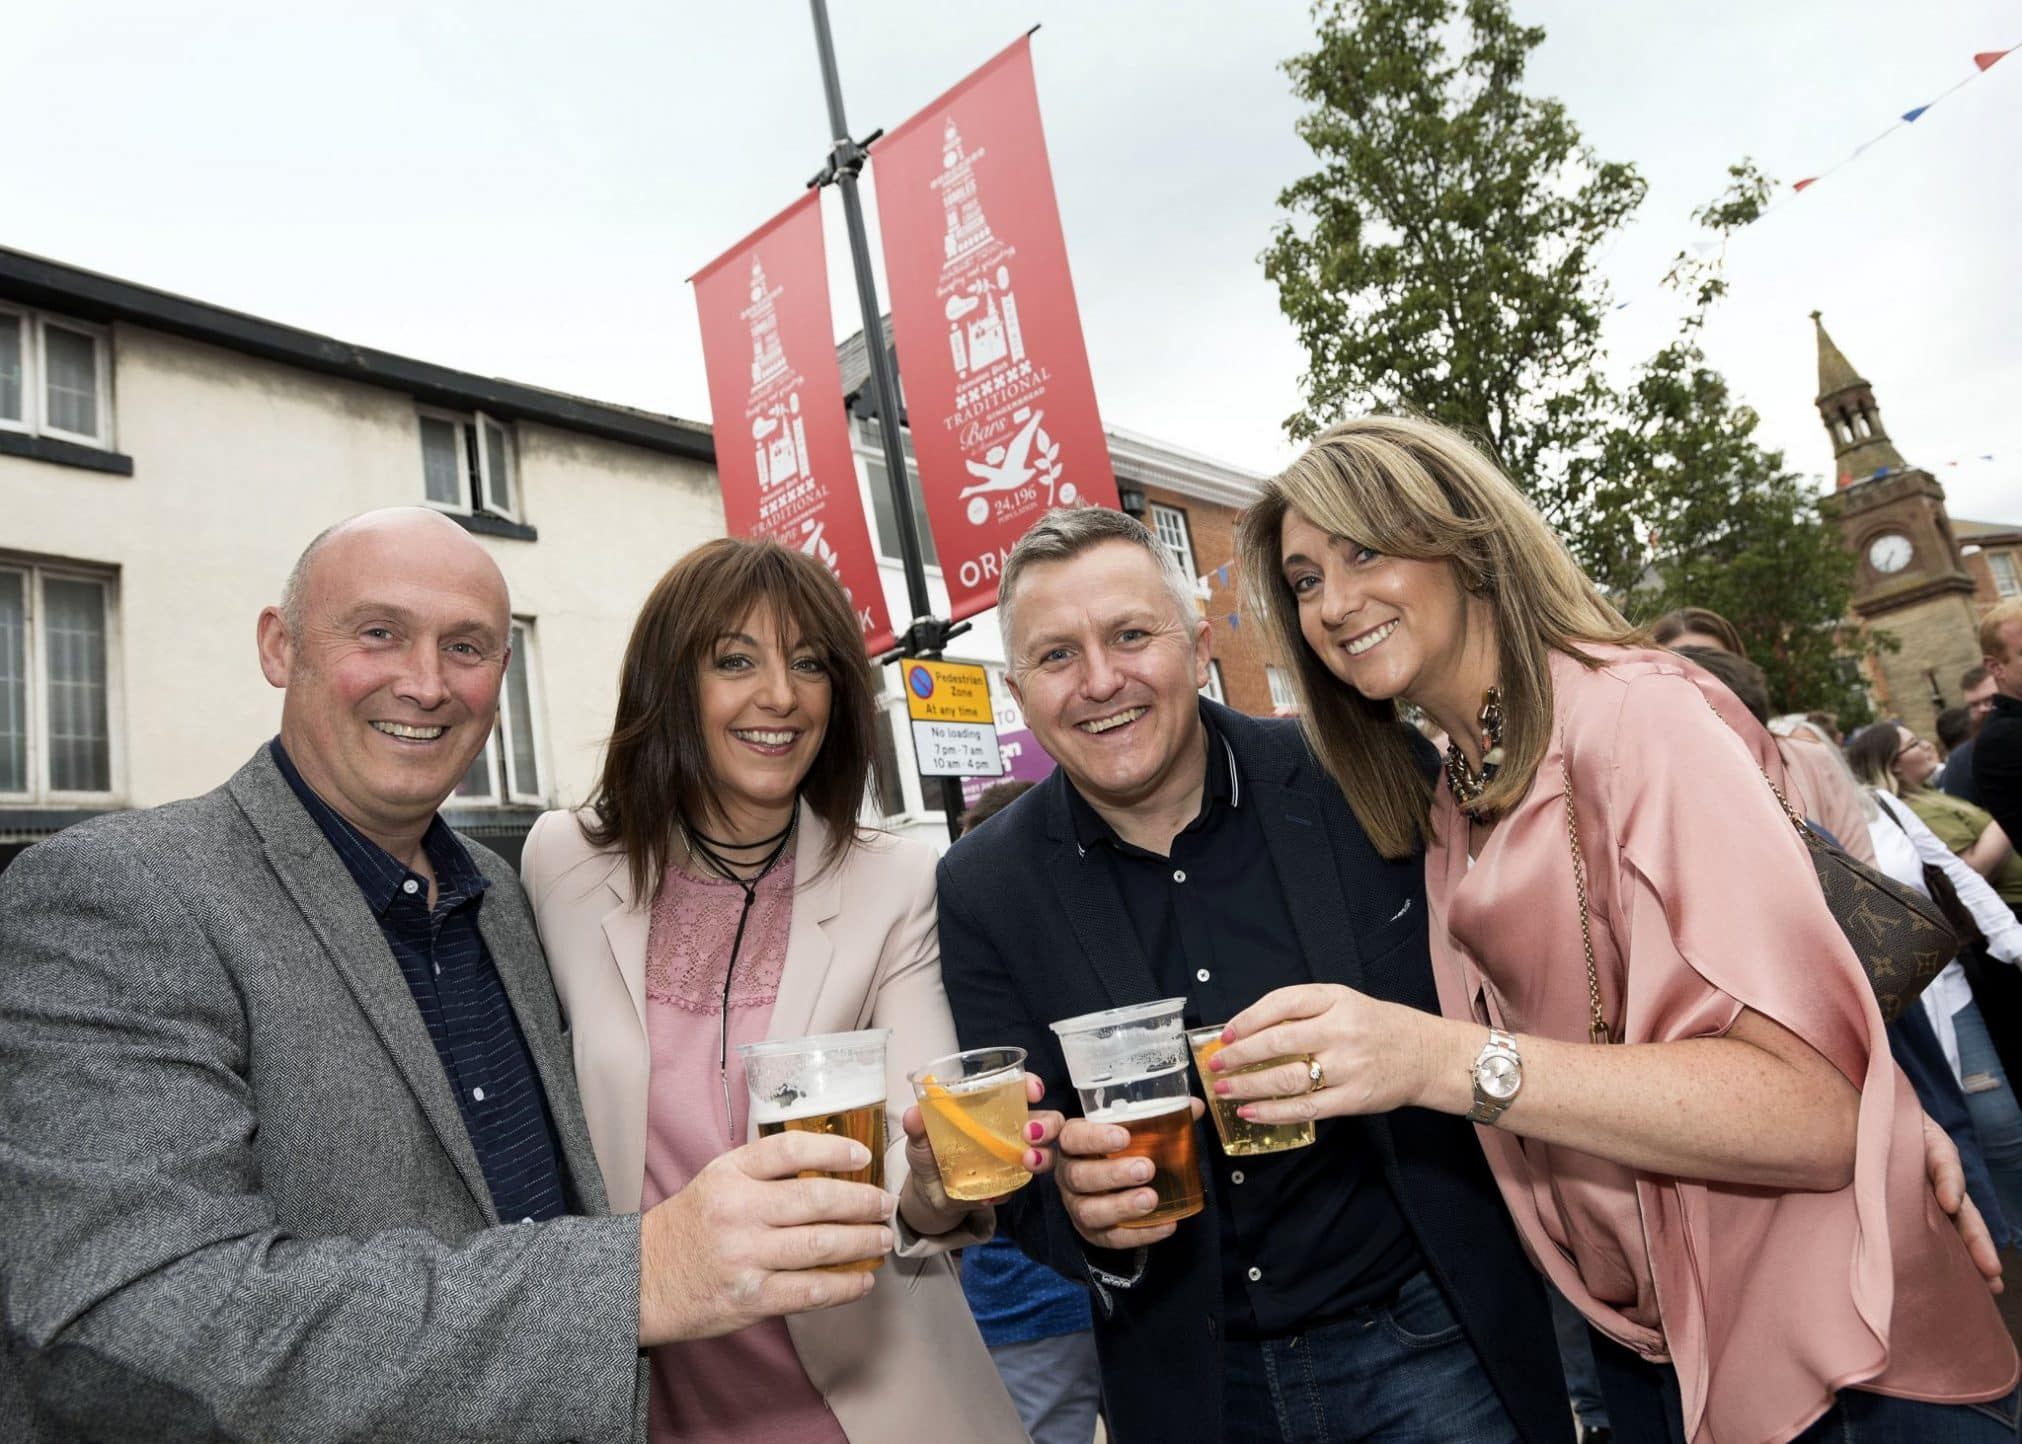 Martin, Ruth, Paul and Lisa enjoy some drinks at Moor St Night Market